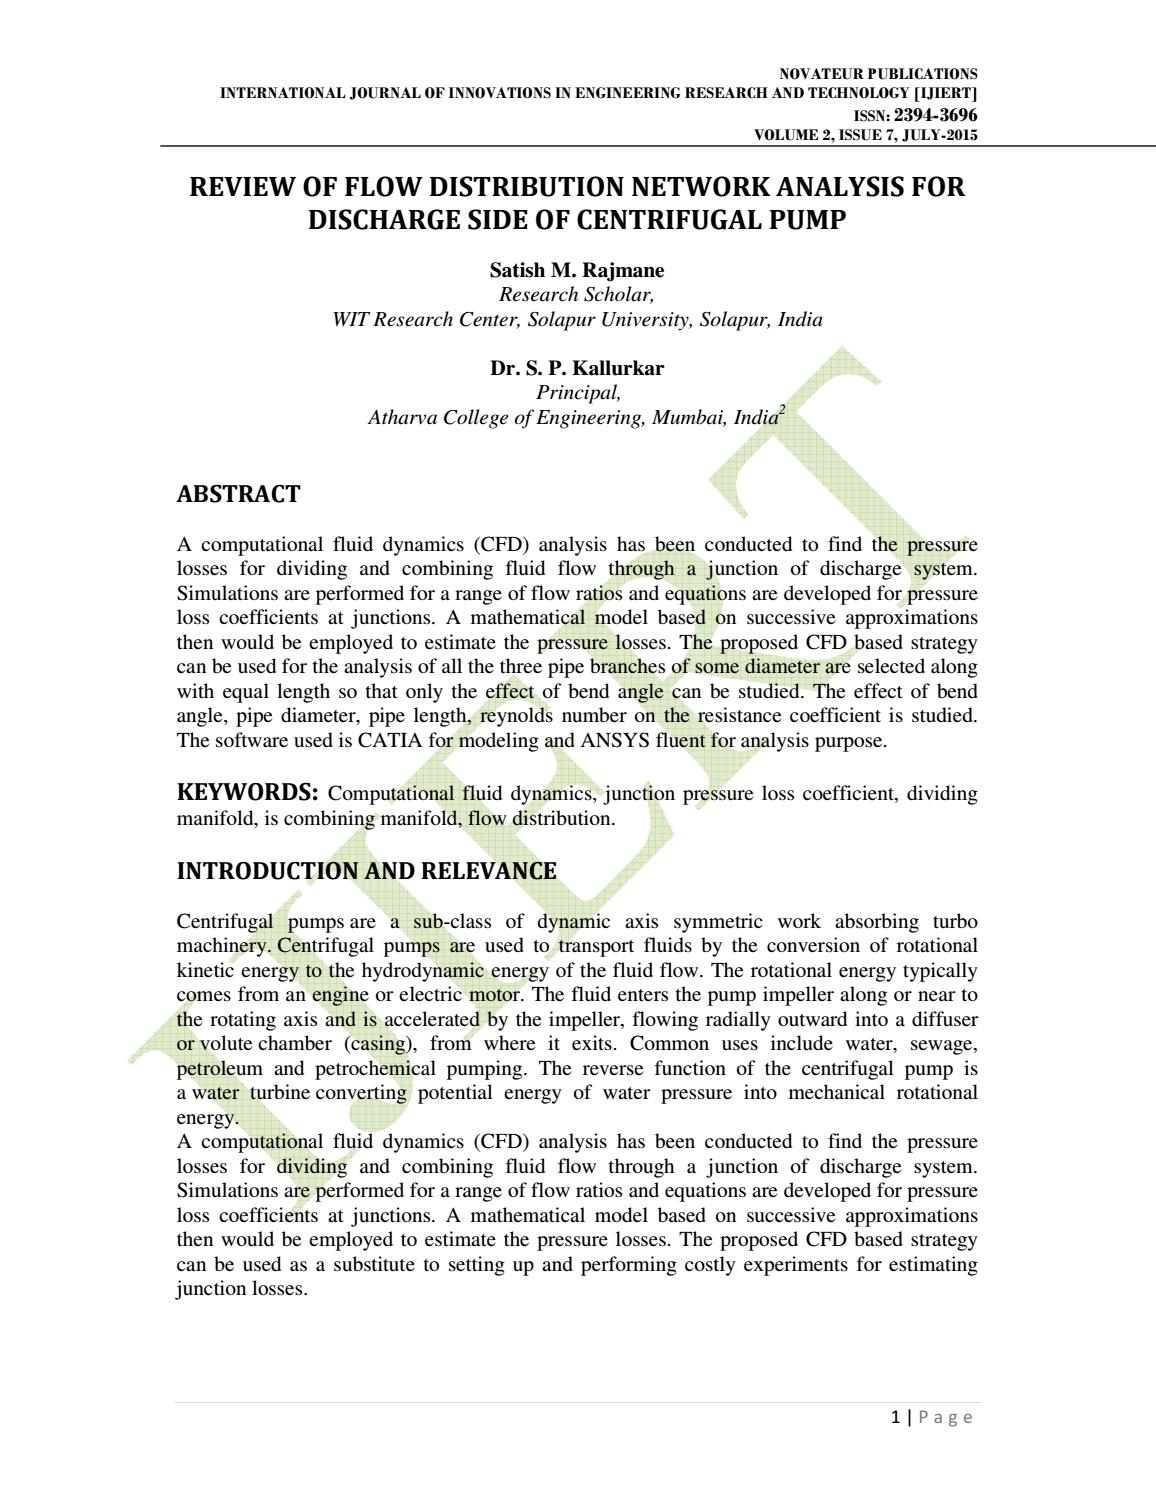 ijiert- REVIEW OF FLOW DISTRIBUTION NETWORK ANALYSIS FOR